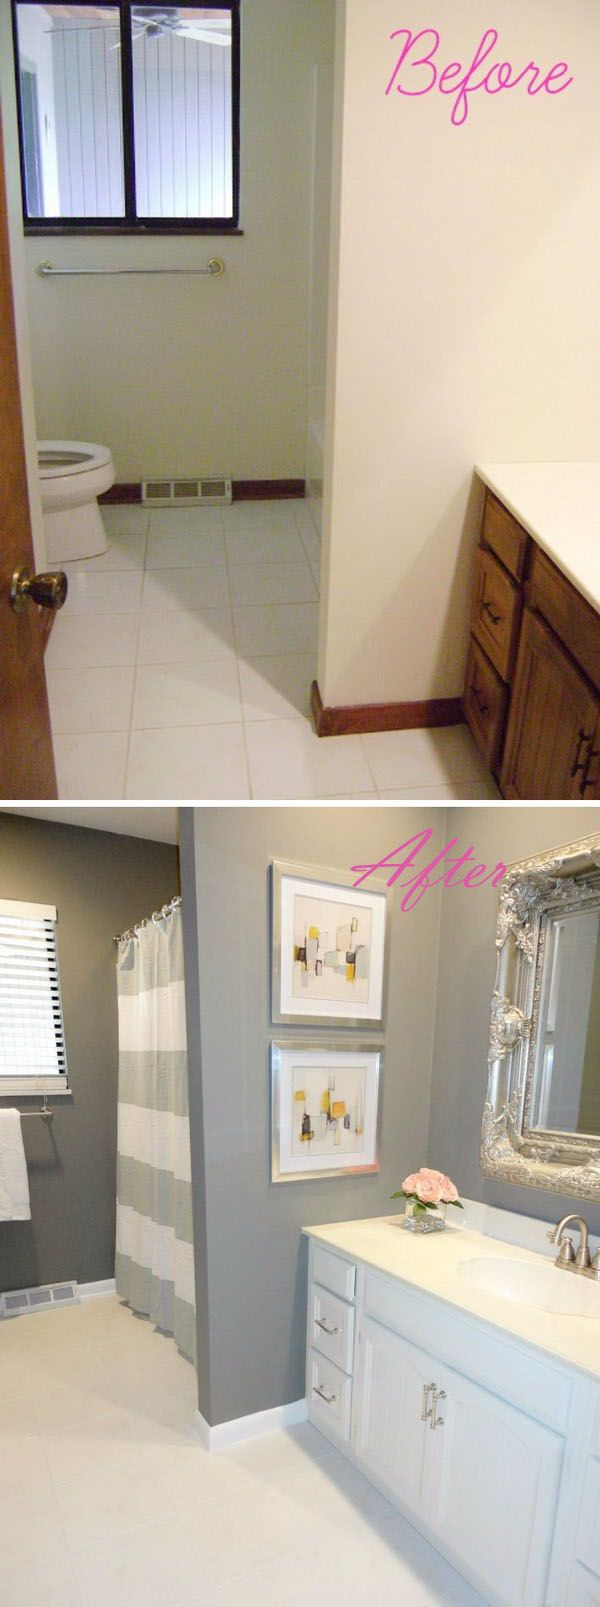 best 25 grey bathroom decor ideas on pinterest half bathroom before and after 20 awesome bathroom makeovers